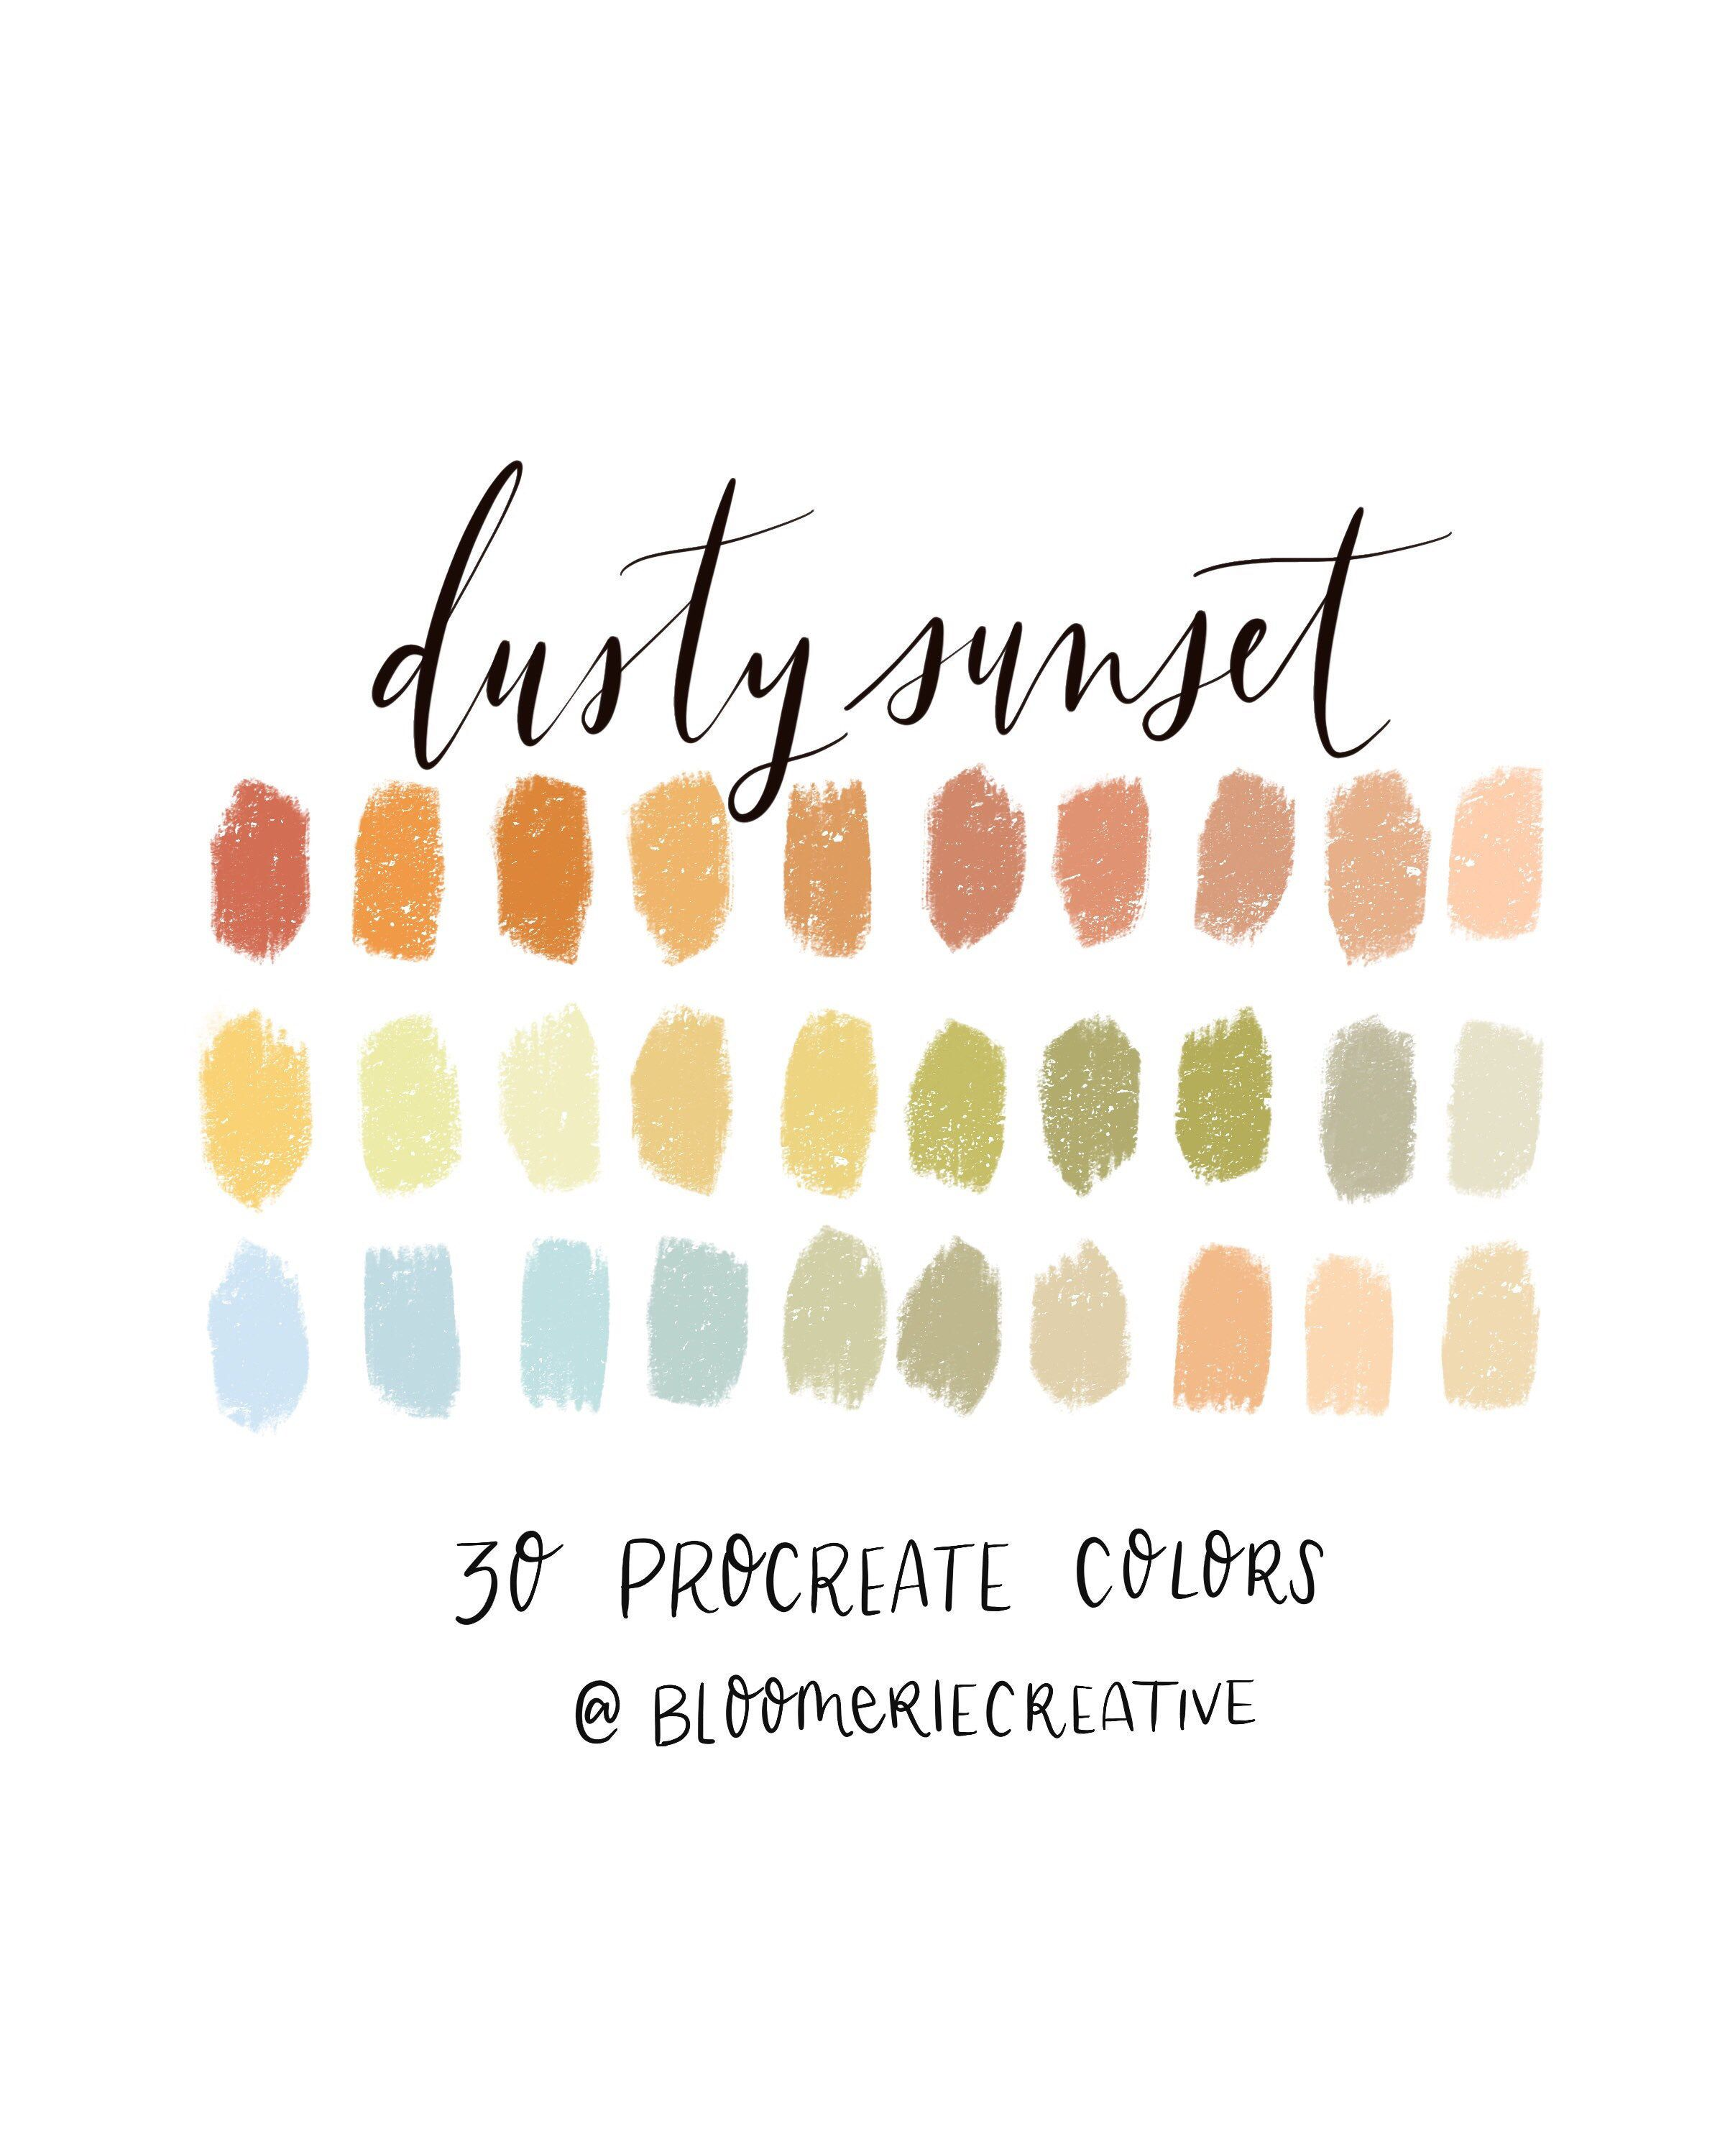 Dusty Sunset / Autumn / Fall / Procreate color palette / Procreate swatches